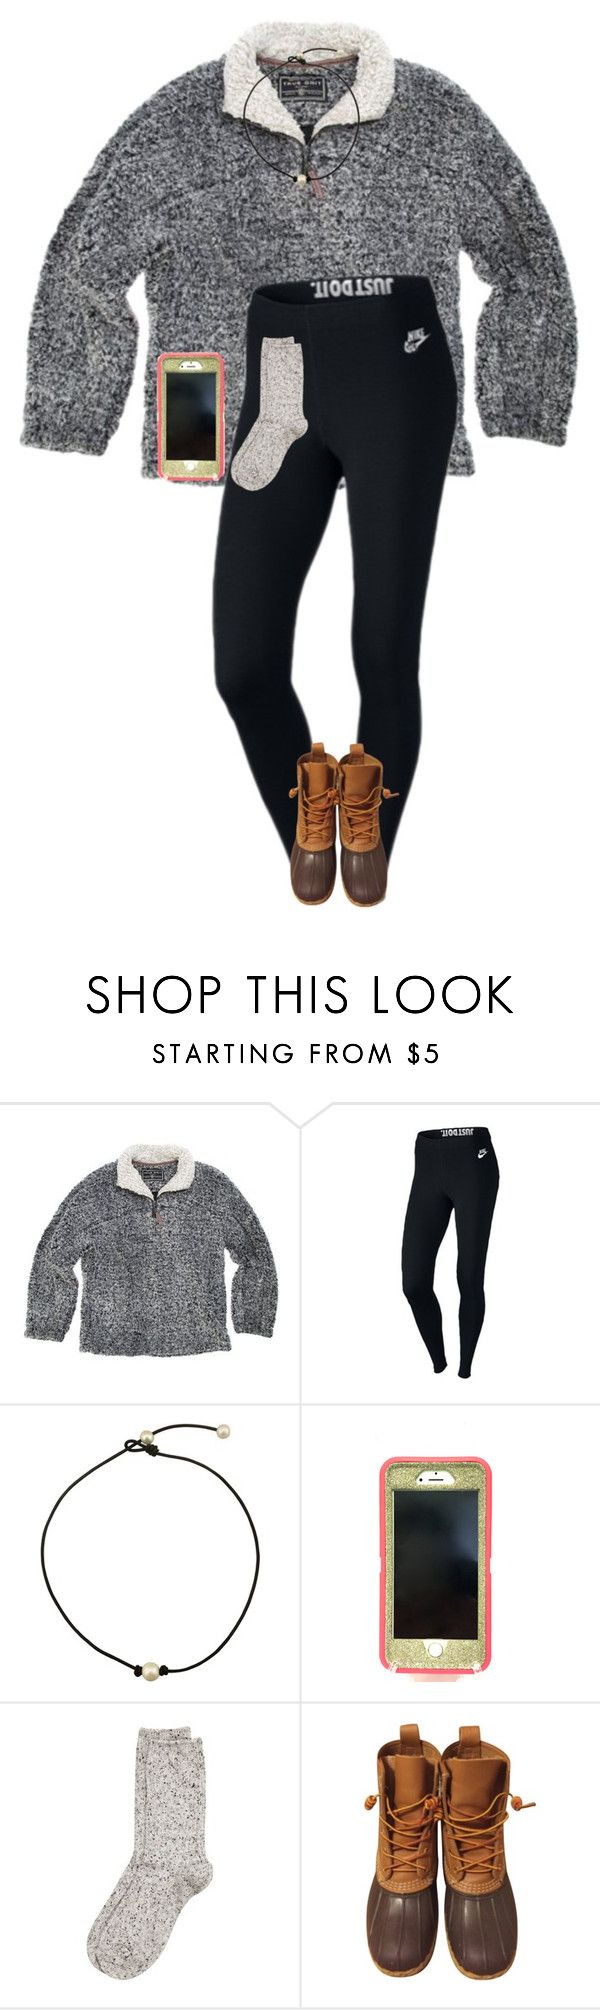 """""""Can someone please tell me what kind of jacket this is because I really want one. """" by one-of-those-nights ❤ liked on Polyvore featuring True Grit, NIKE, OtterBox, River Island and L.L.Bean"""